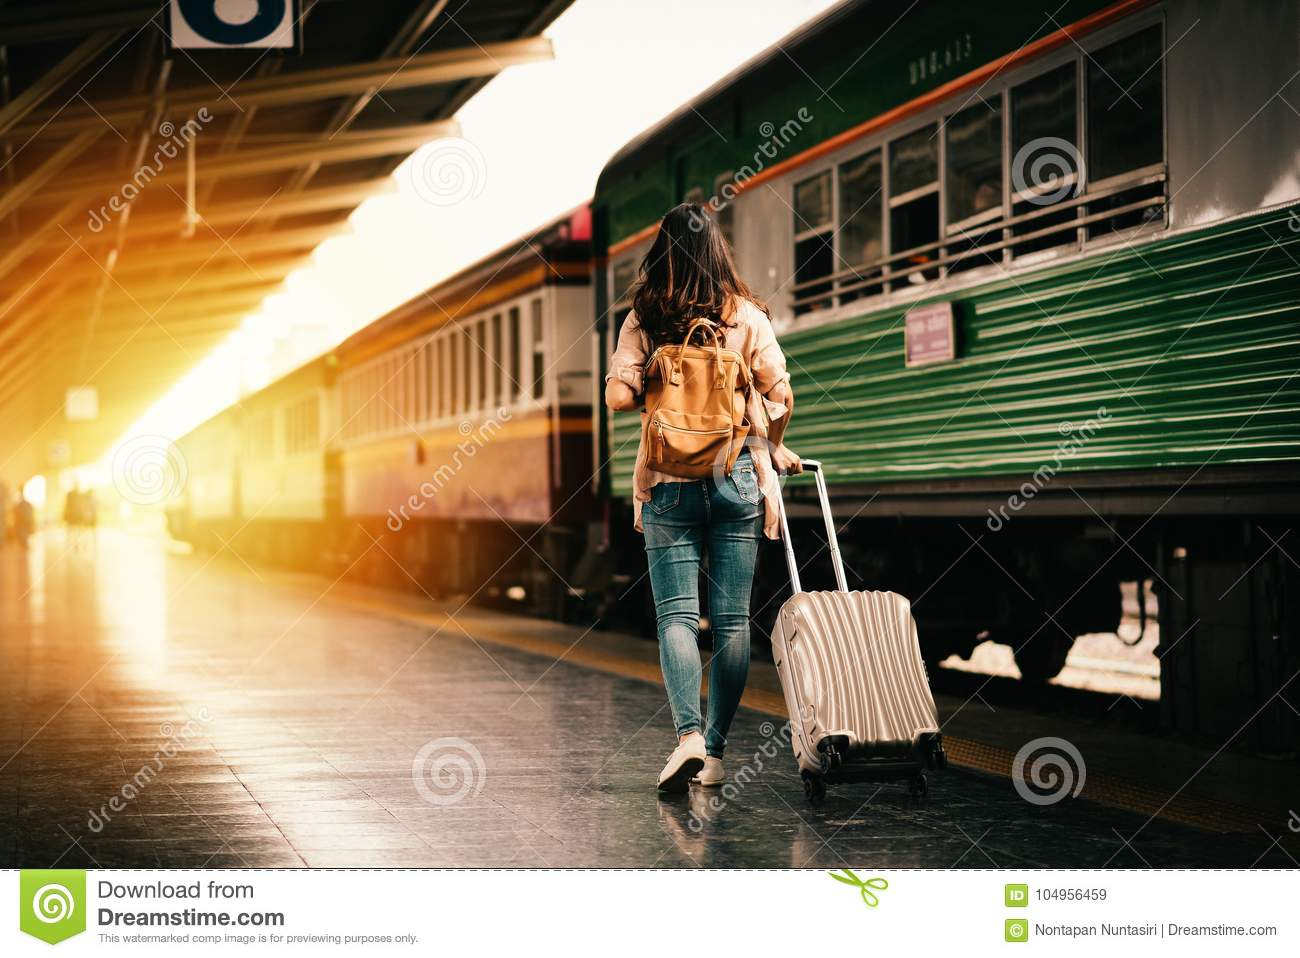 Woman traveler tourist walking with luggage at train station